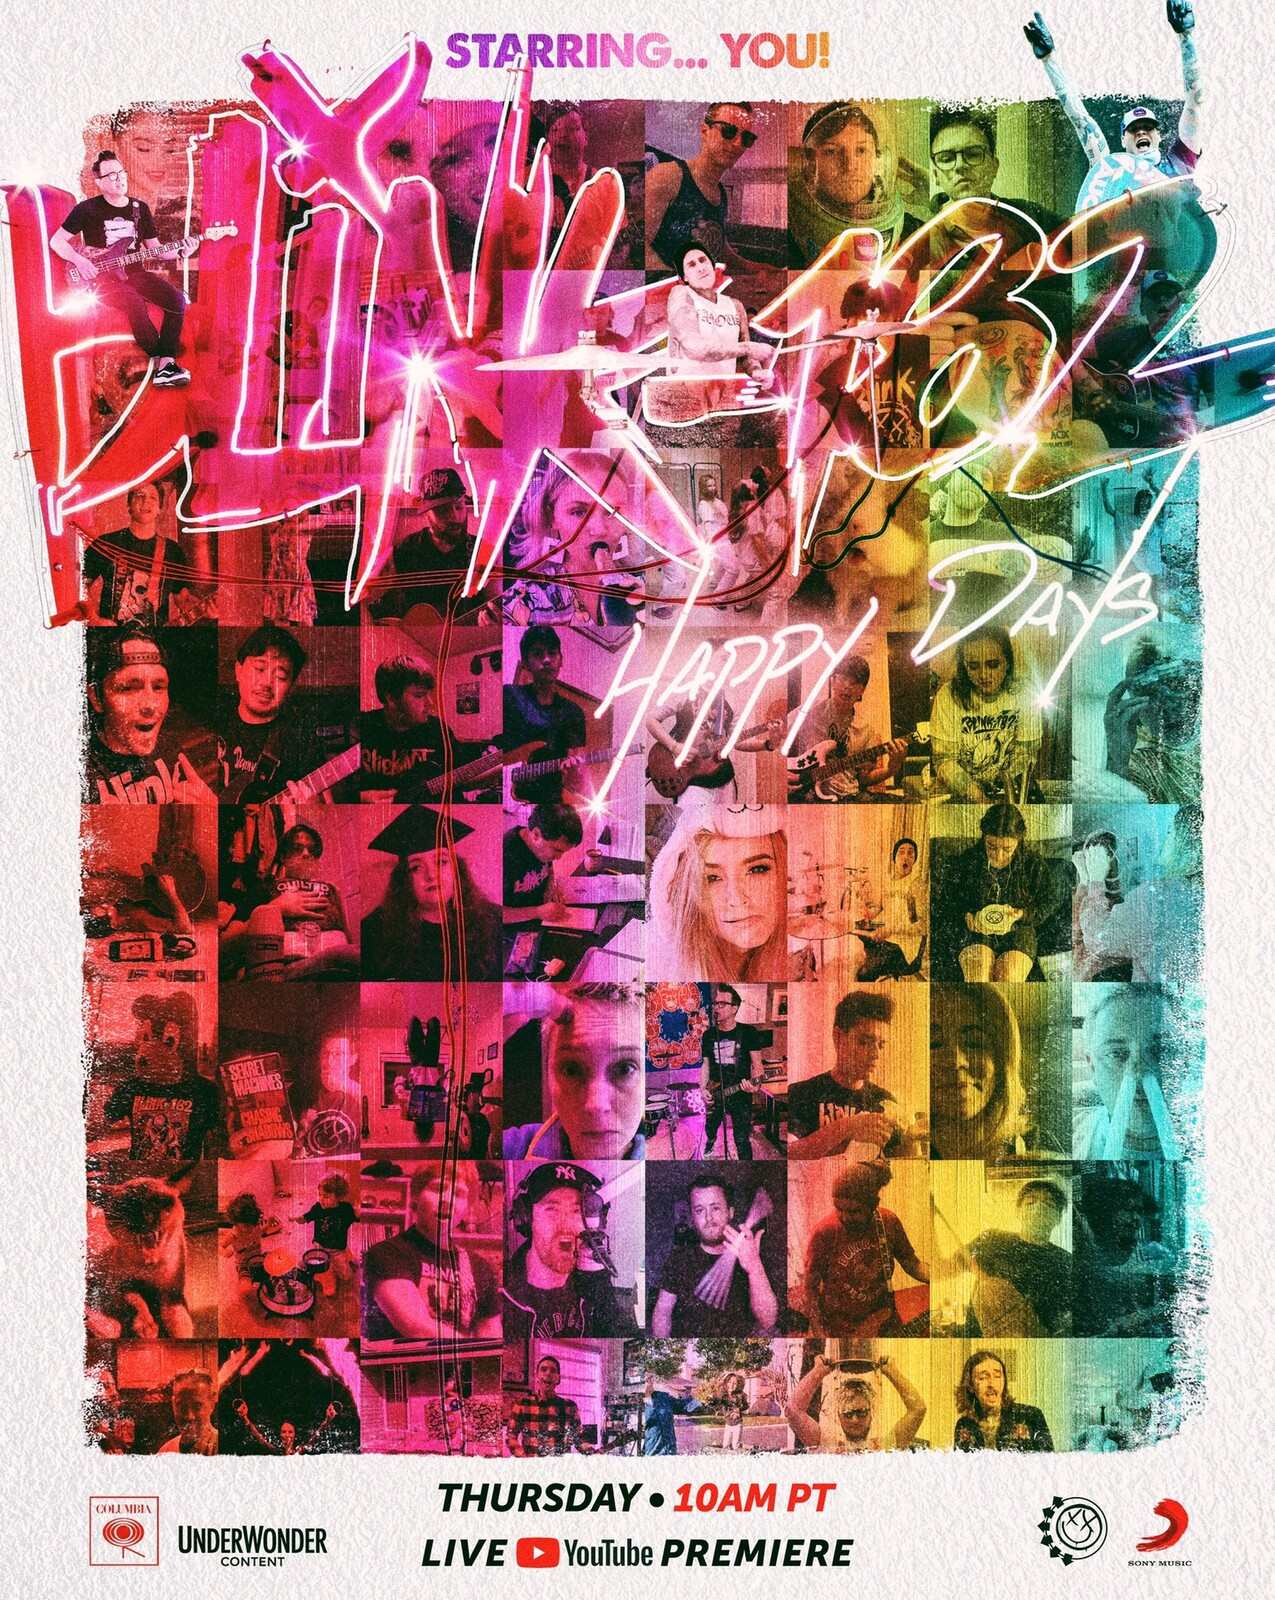 Blink 182 - Happy Days Music Video Movie Poster - Neemz, The Movie Poster Guy